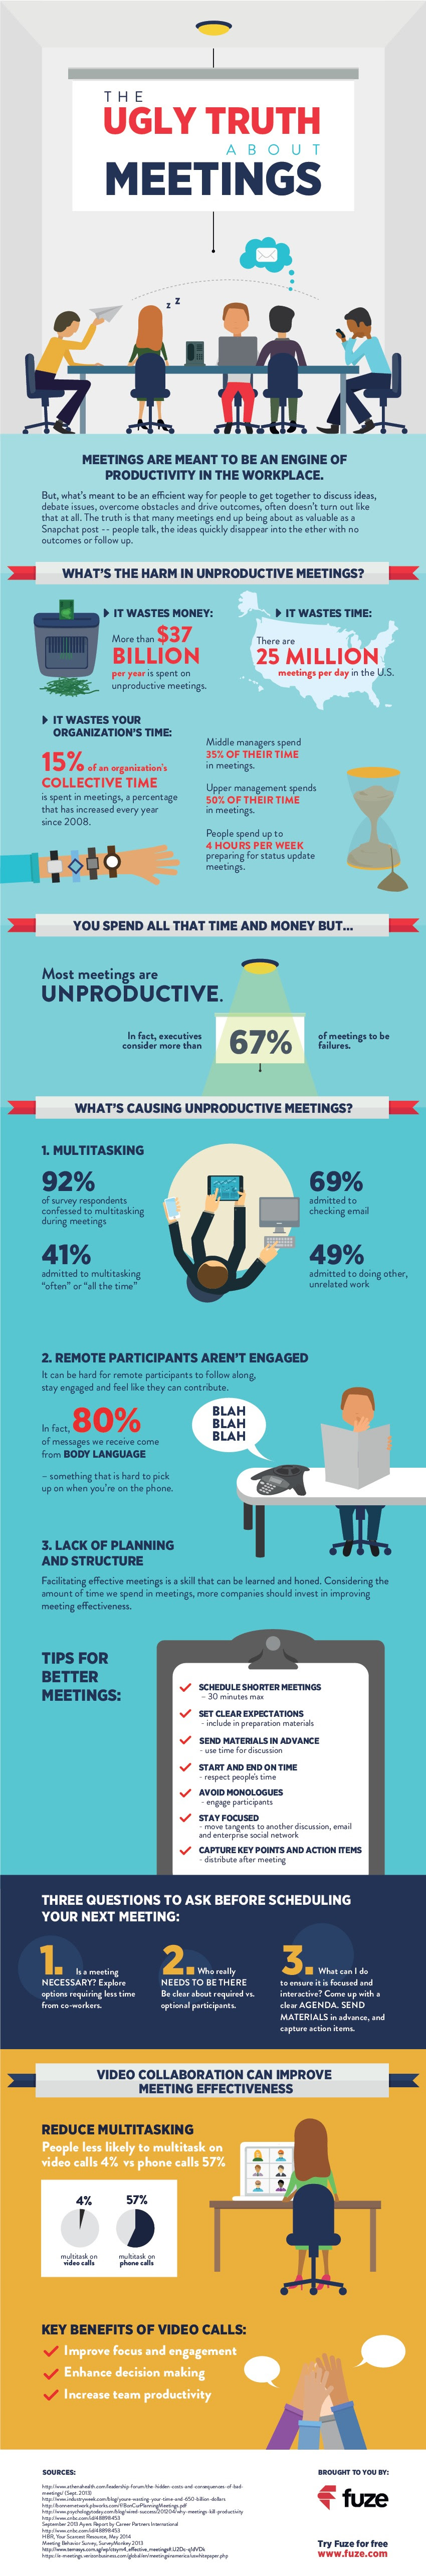 Infographic: The Ugly Truth About Meetings #infographic